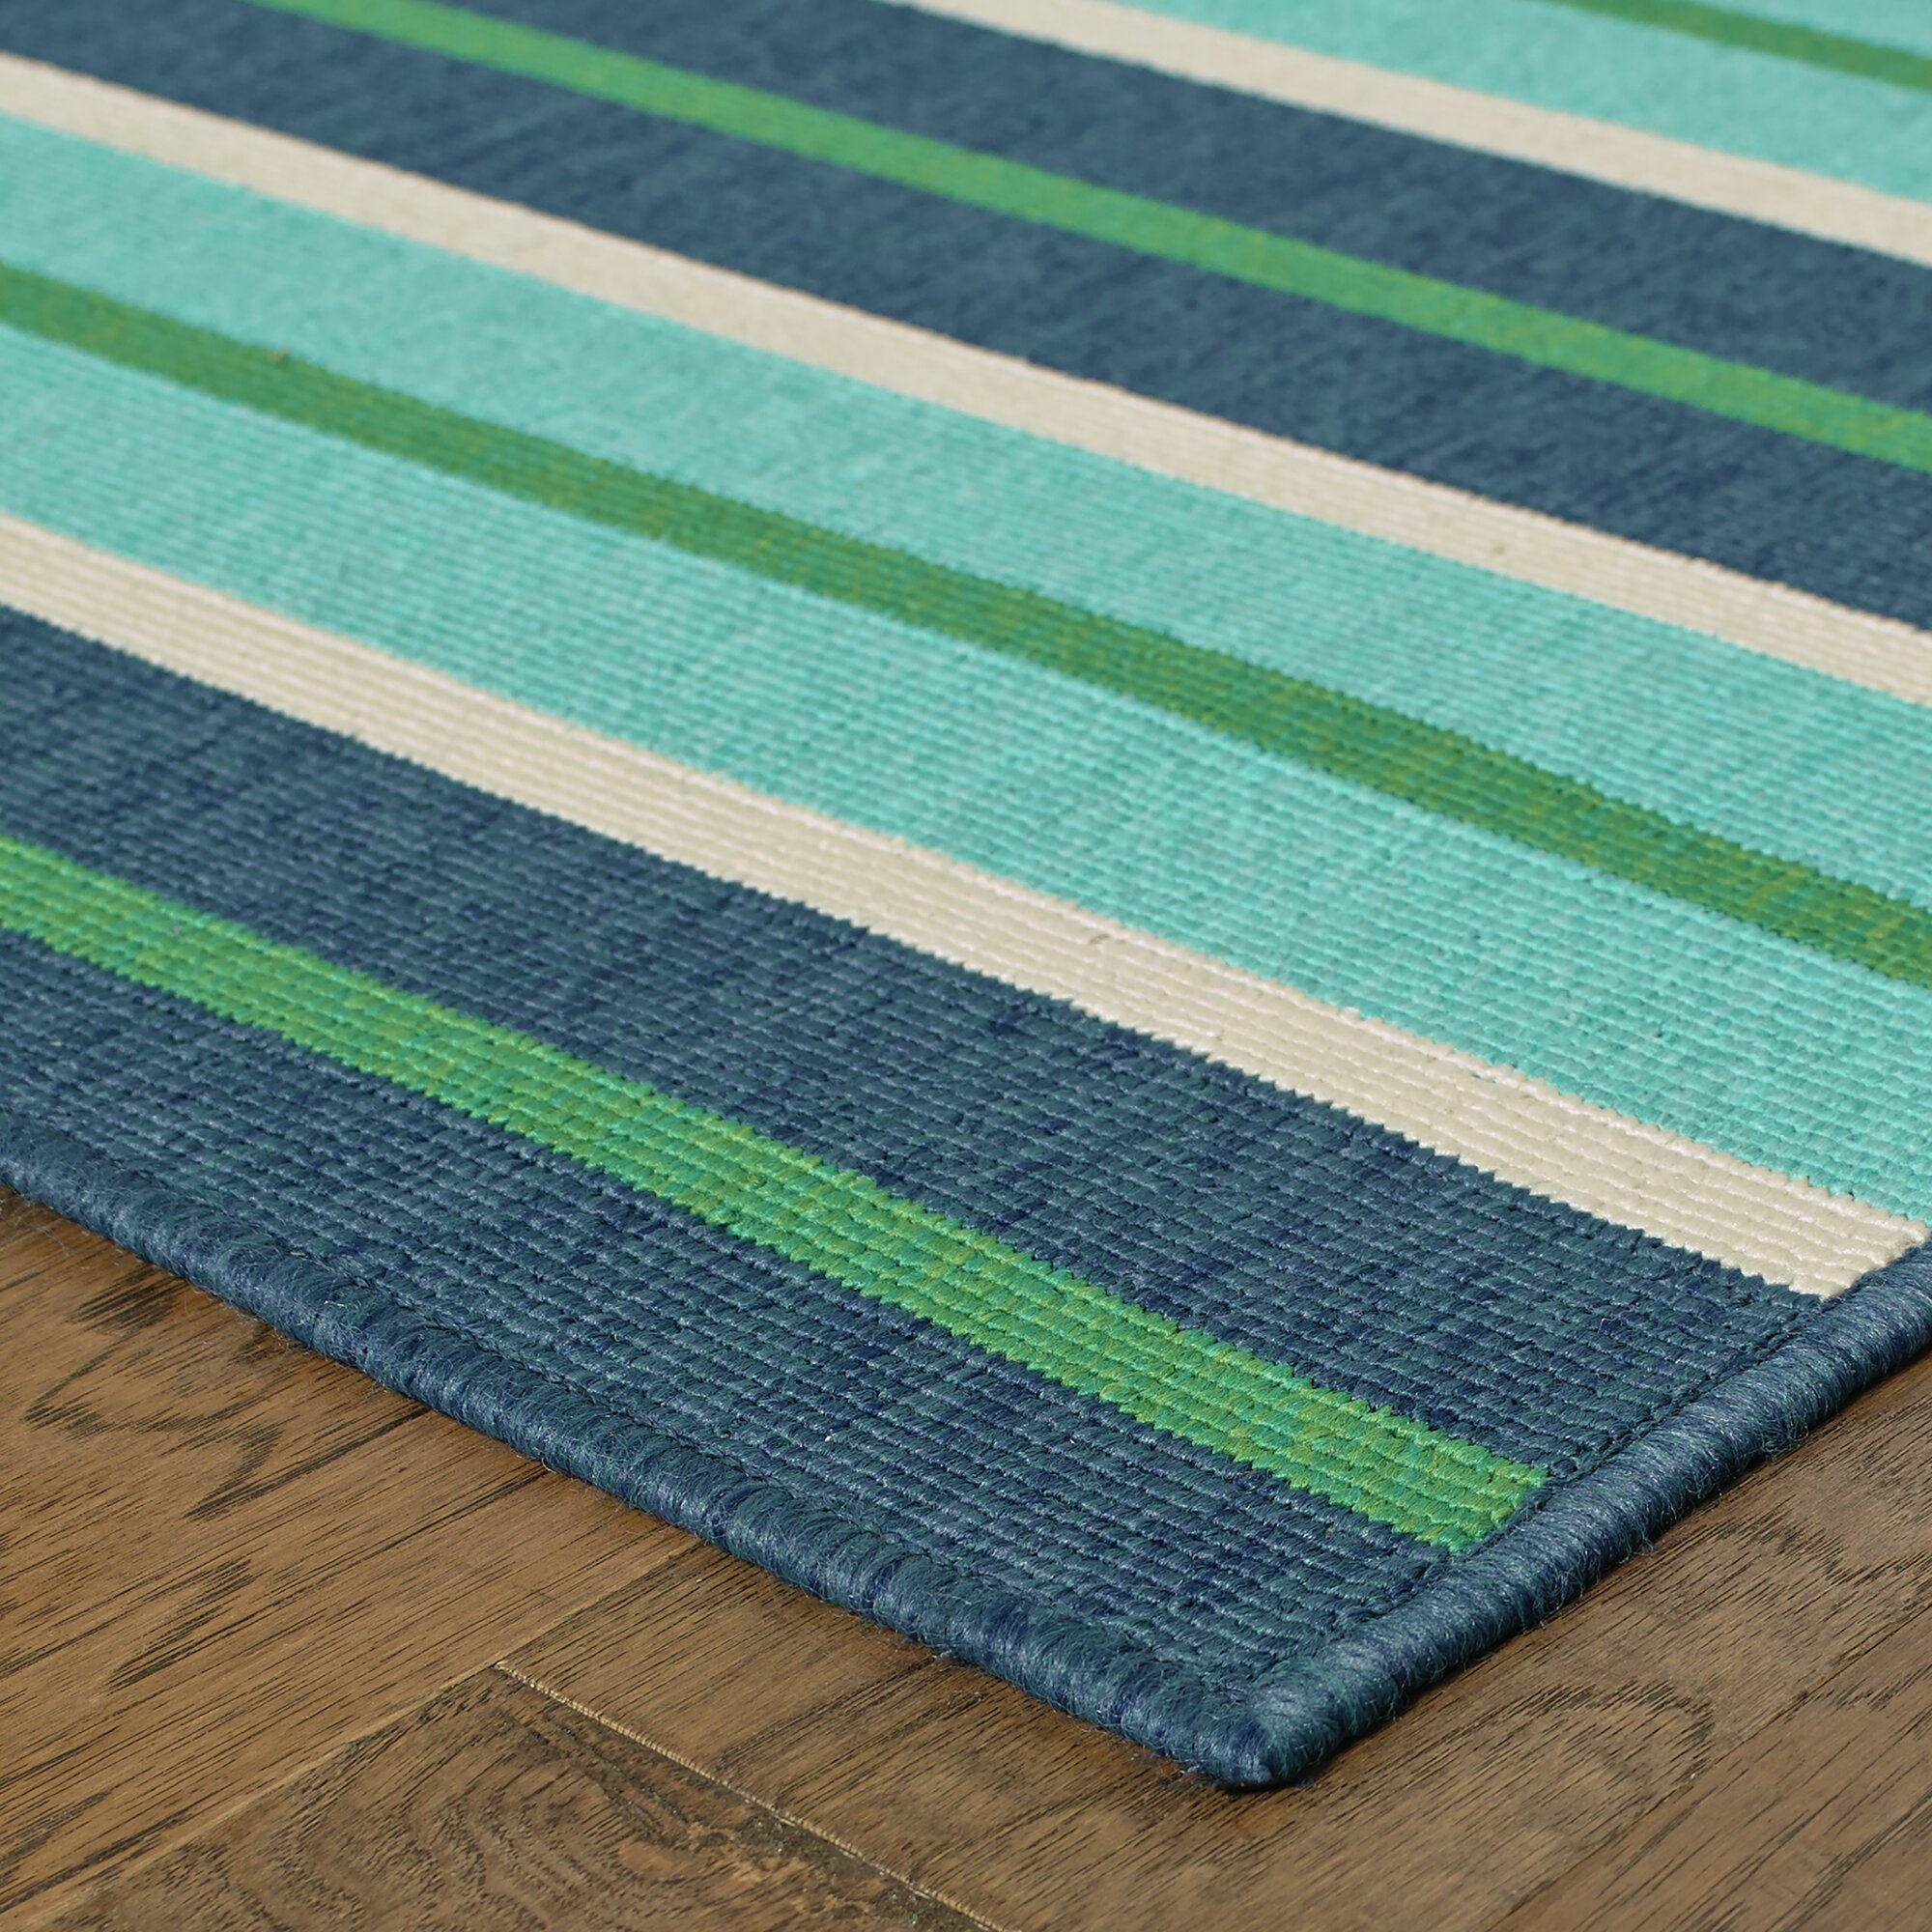 Cortlandt blue green indoor outdoor area rug reviews for Indoor outdoor carpet green